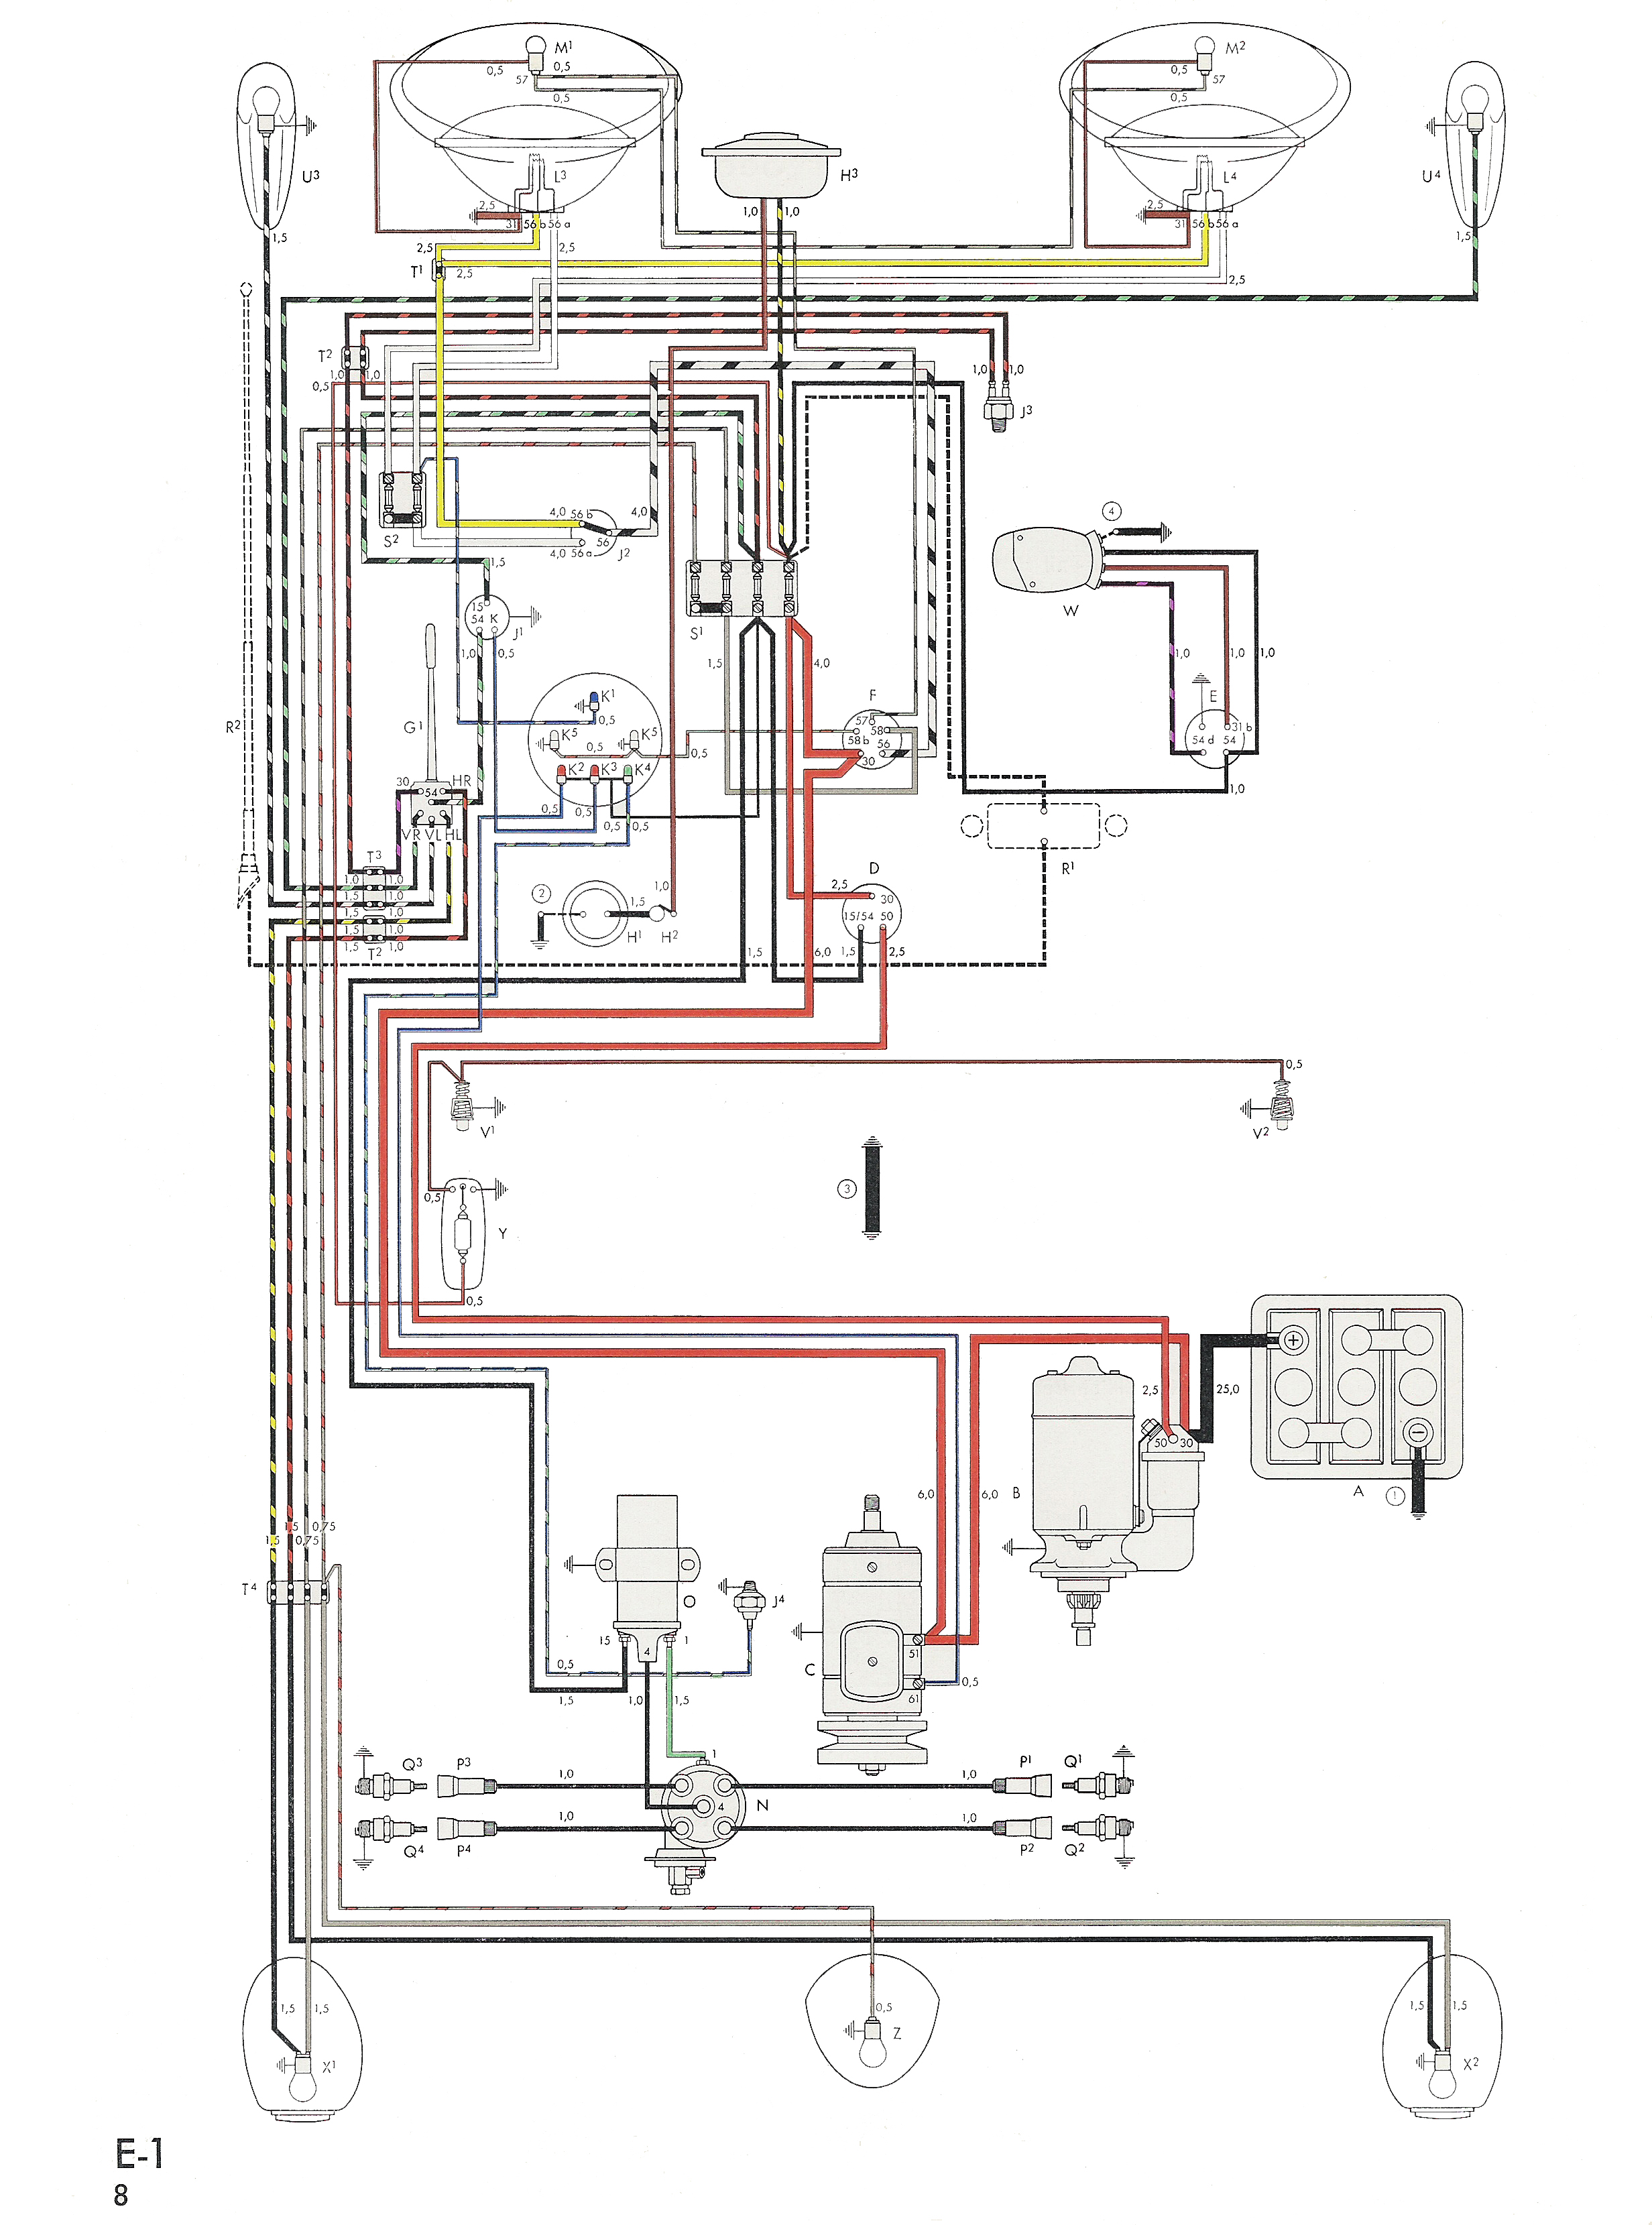 bug_58_USA_300dpi thesamba com type 1 wiring diagrams find wiring diagram for 87 ford f 150 at soozxer.org